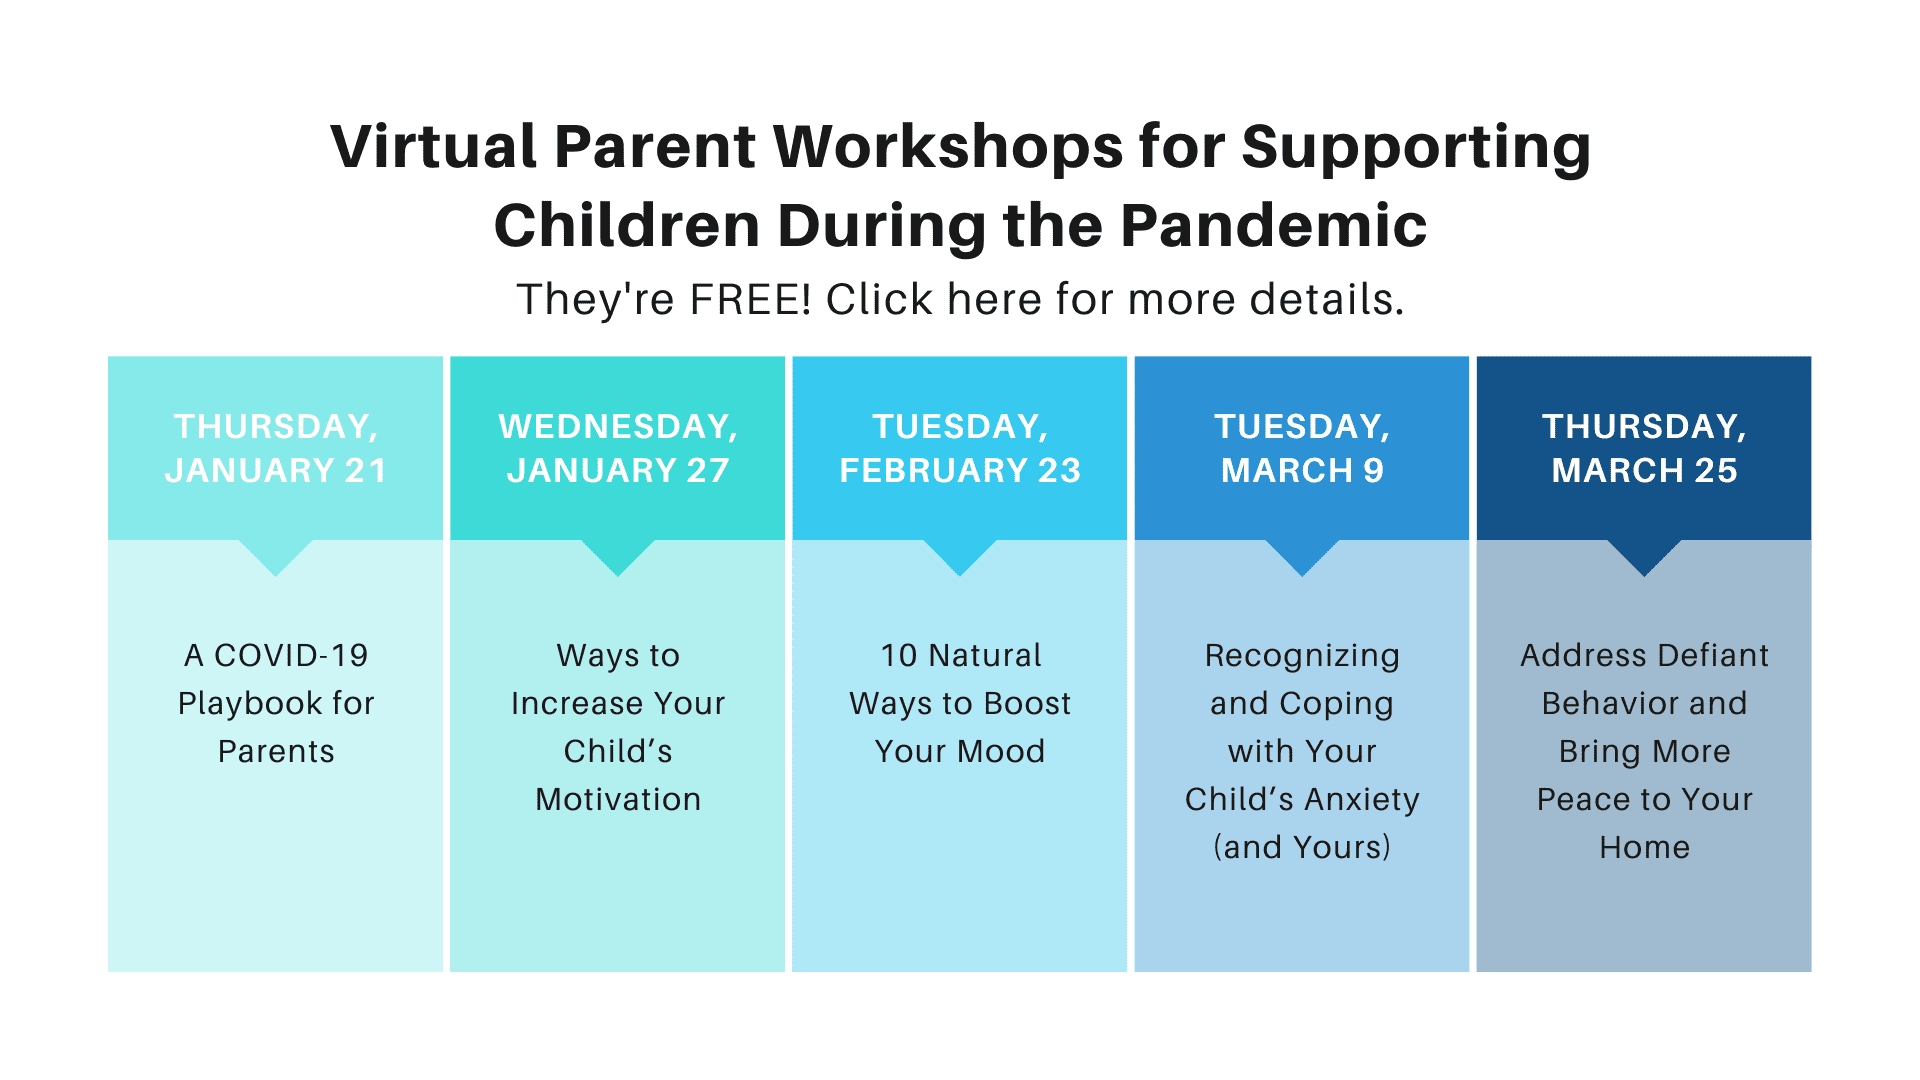 virtual parent workshops for supporting children during the pandemic